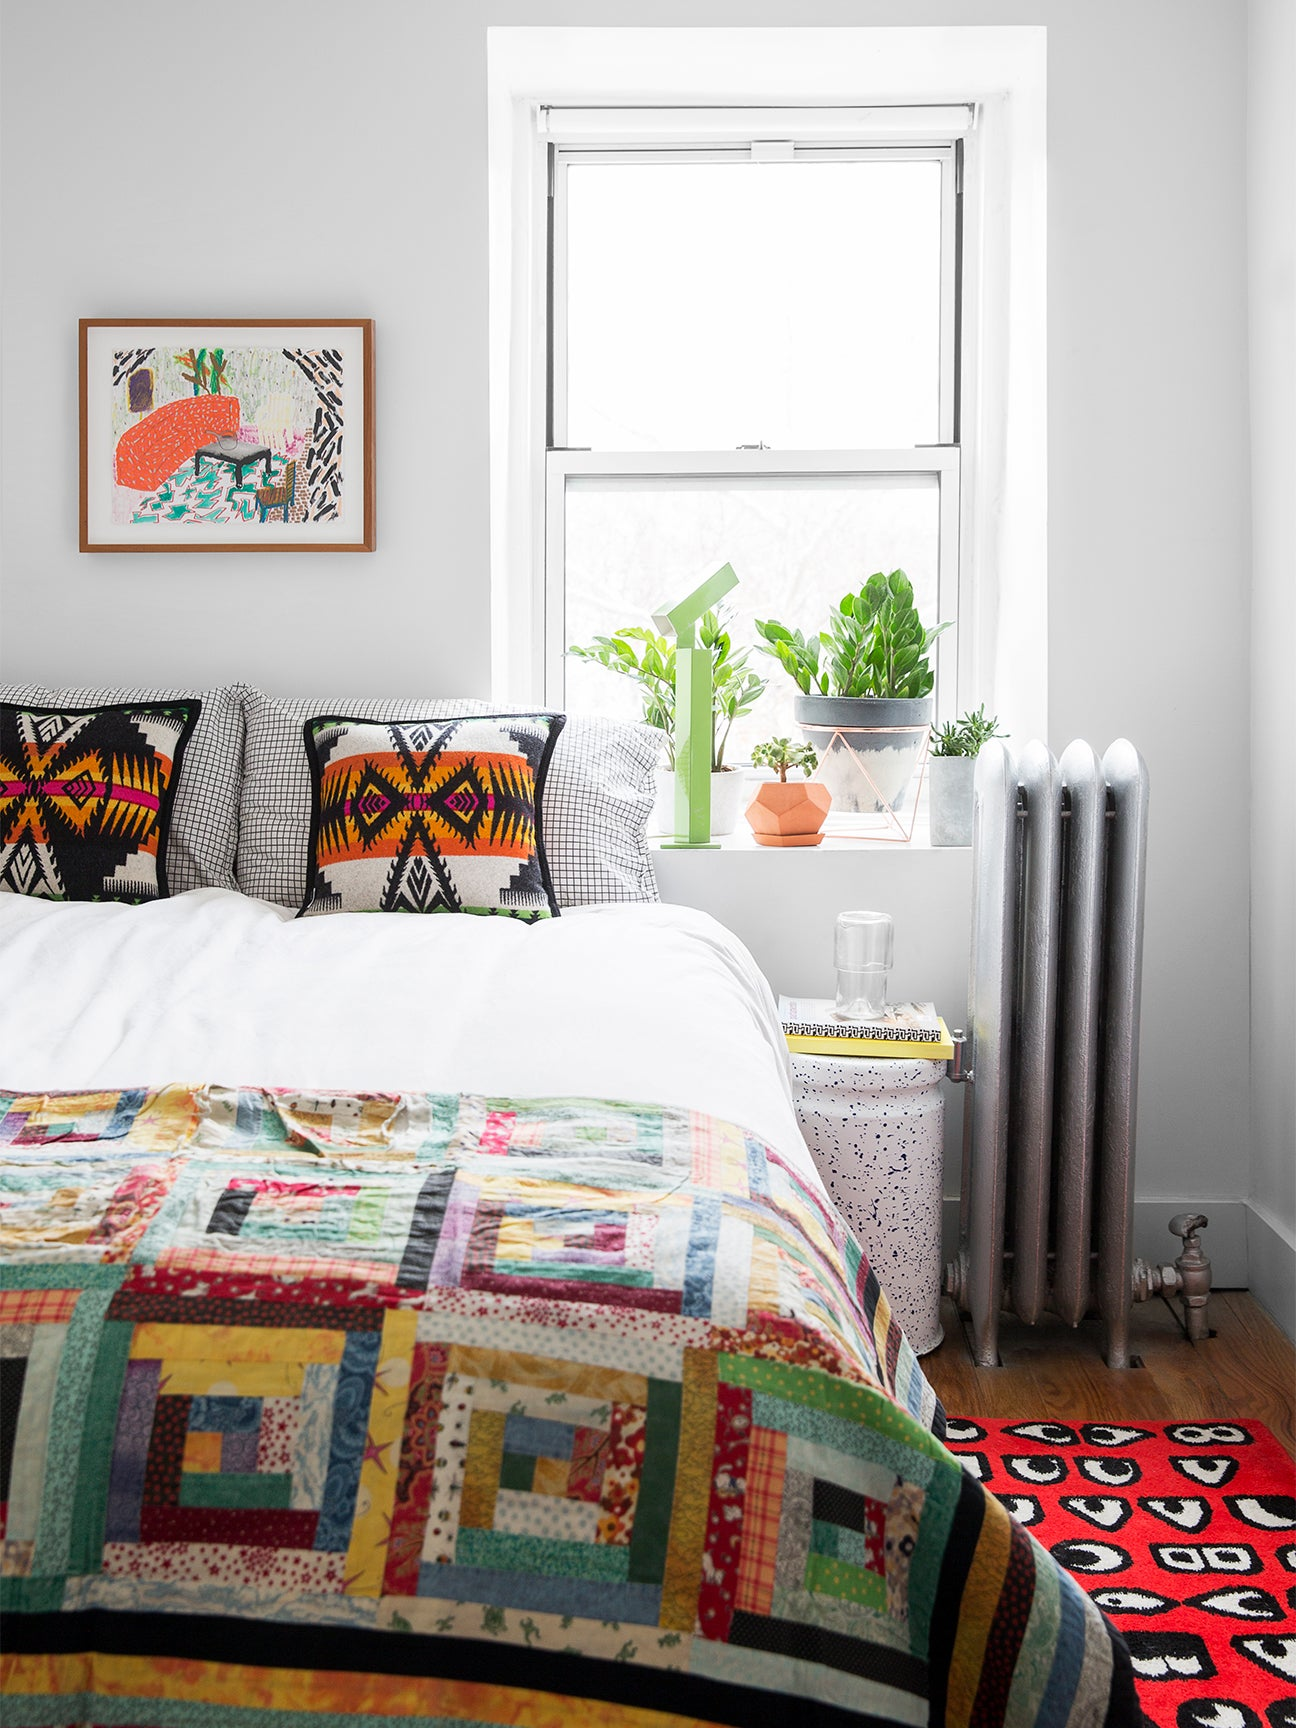 bedroom with colorful quilt